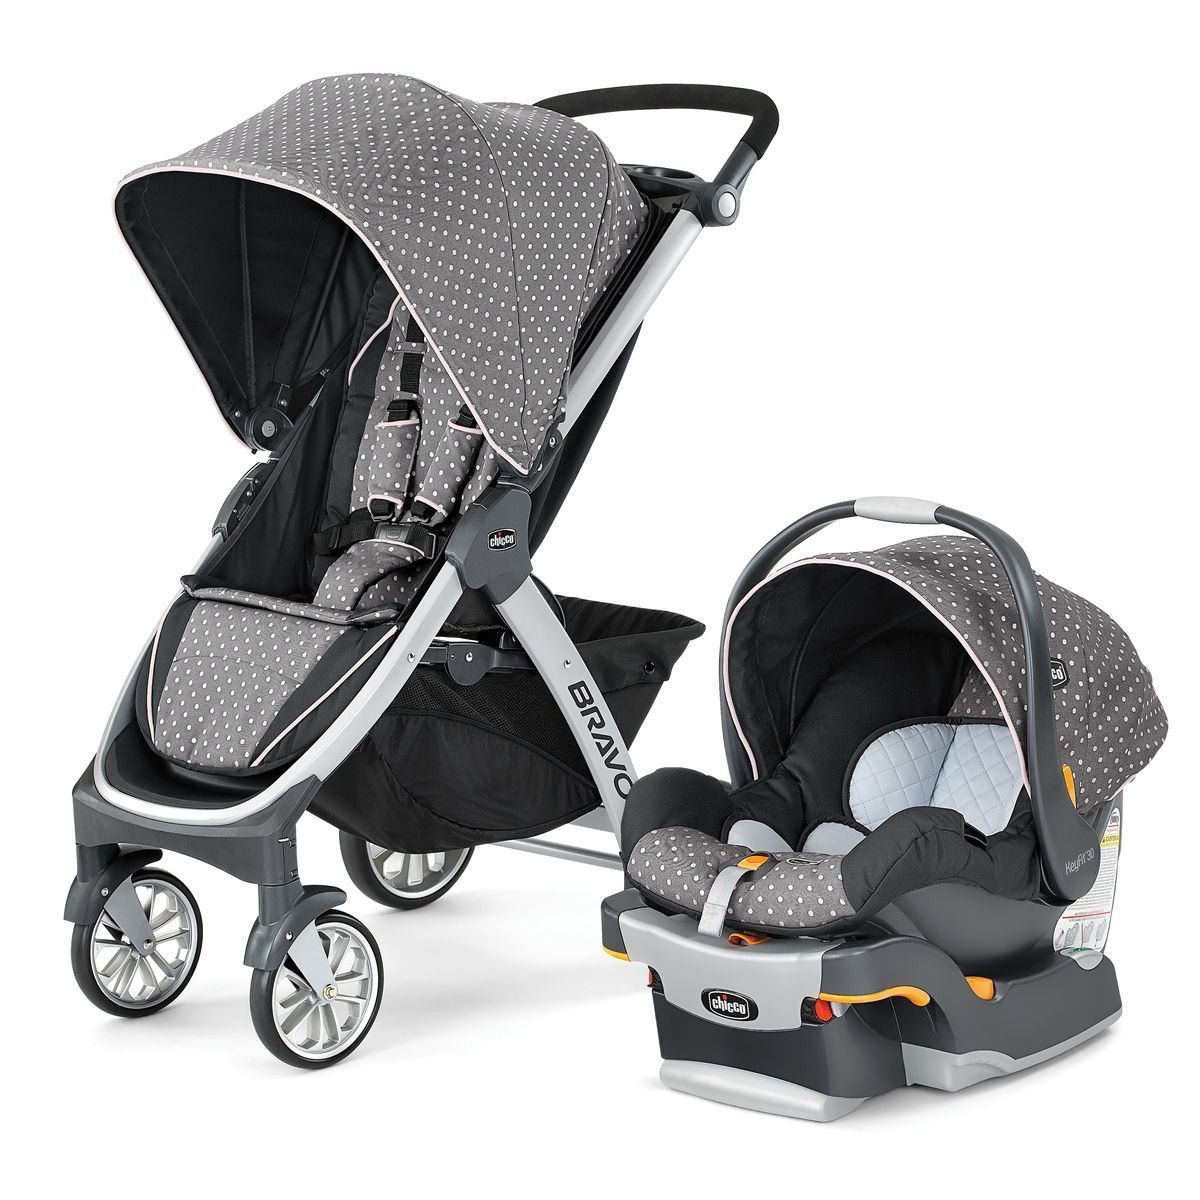 Car Seat Stroller Combo That Grows With Baby Chicco Bravo Trio Travel System With Keyfit 30 Infant Car